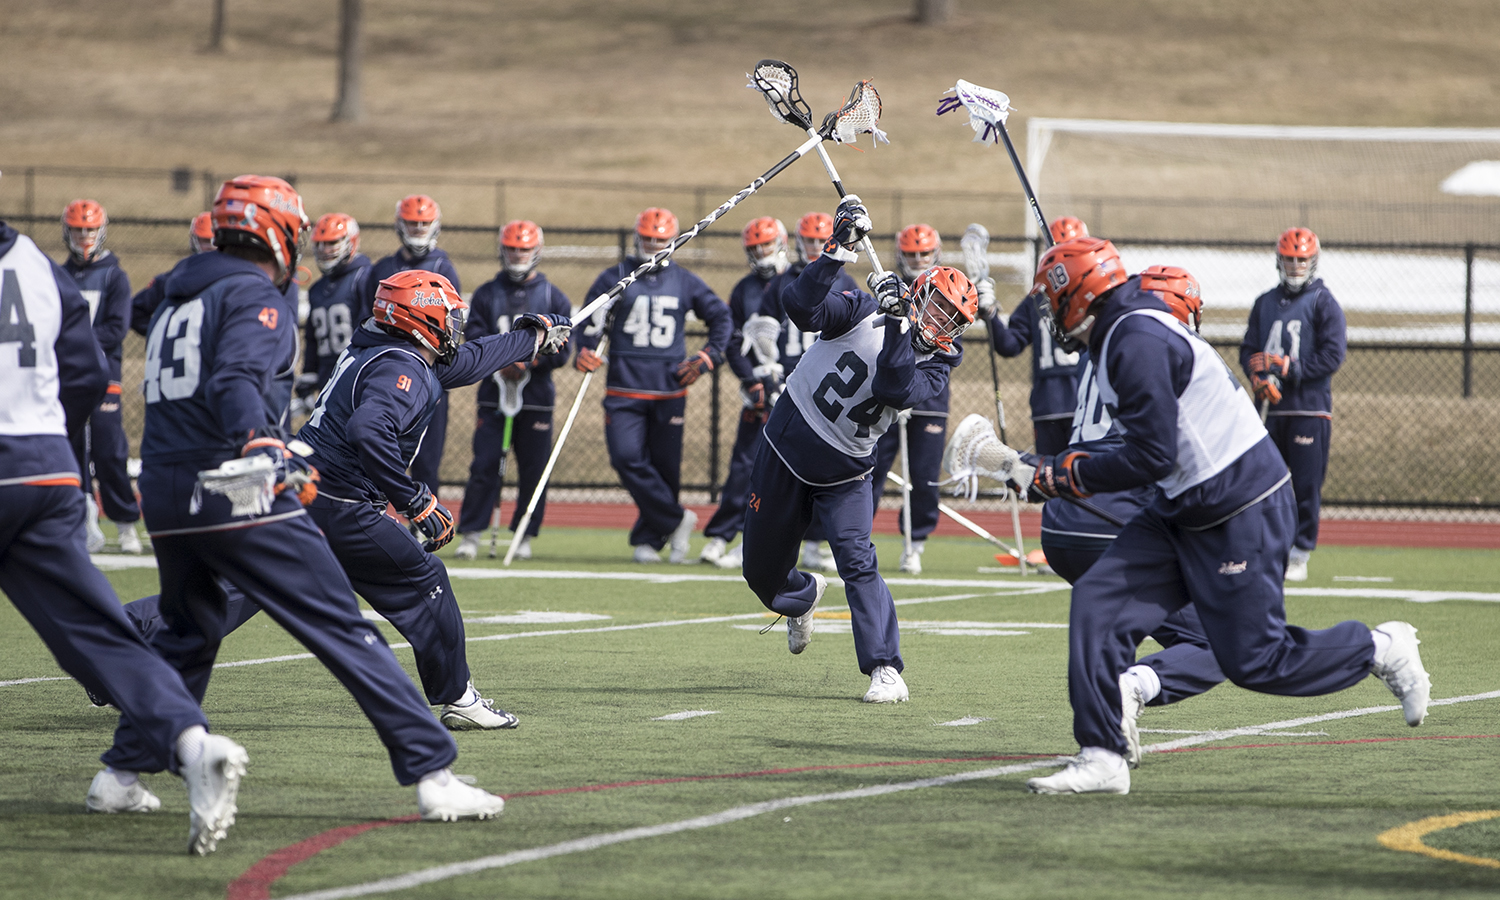 Eric Holden '19 shoots during Hobart Lacrosse's practice on Tuesday. Hobart will host Northeast Conference rival Saint Joseph's University on Saturday, March 24. The opening faceoff on Boswell Field is scheduled for noon.